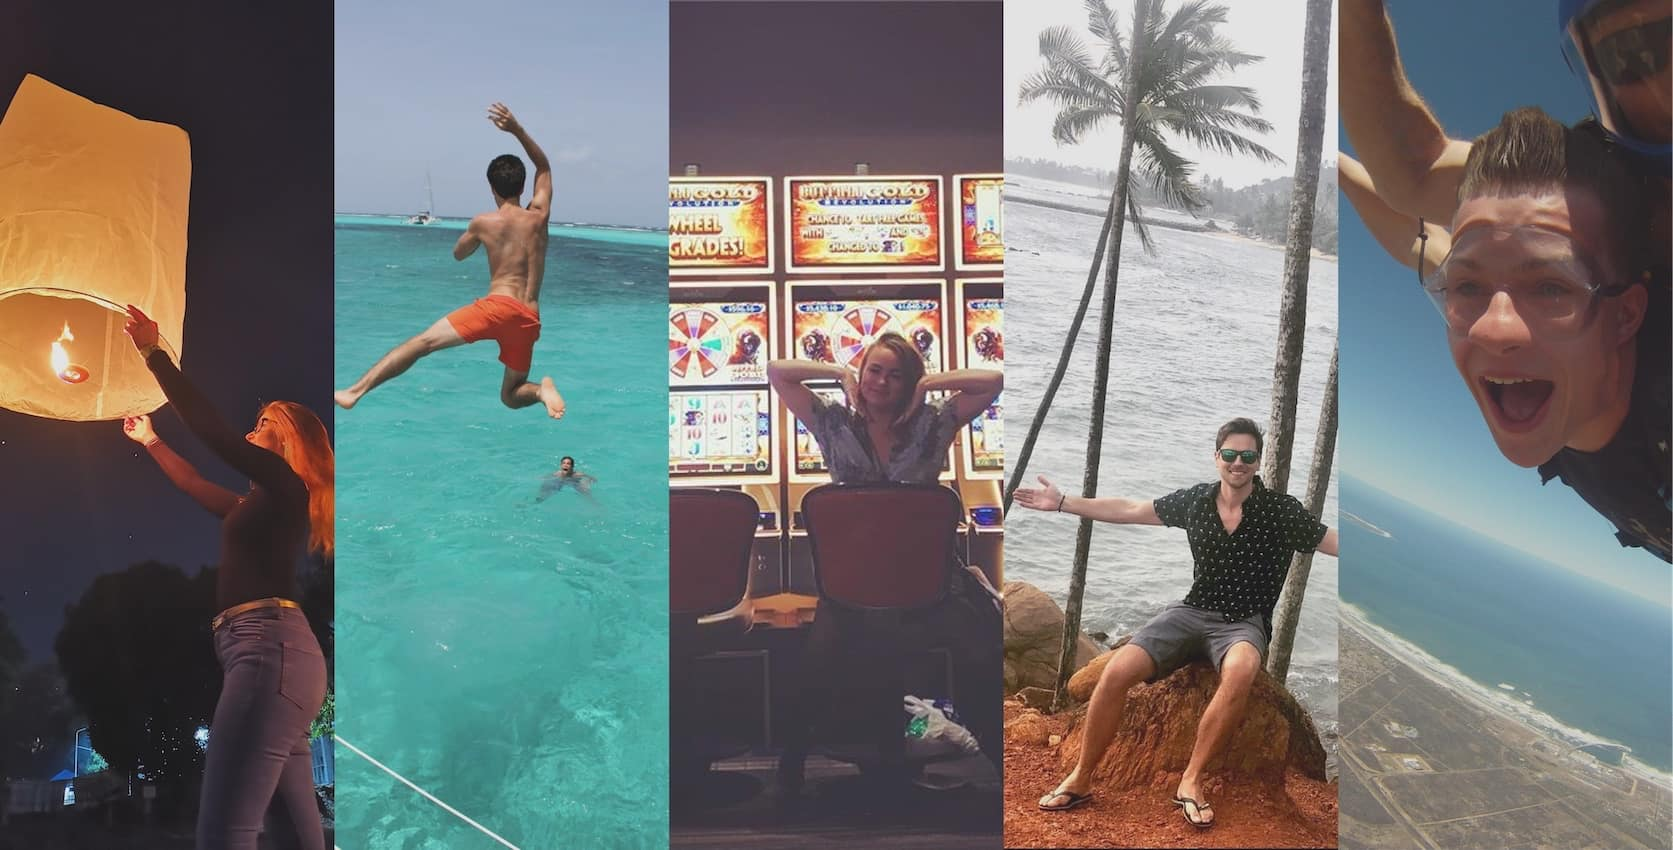 Abbi setting off a Chinese lantern, Callum jumping into some bright blue ocean water, Lisa looking very happy in a Las Vegas casino, Andrew chilling by some tropical palm trees, and Loic skydiving by the coast in South Africa